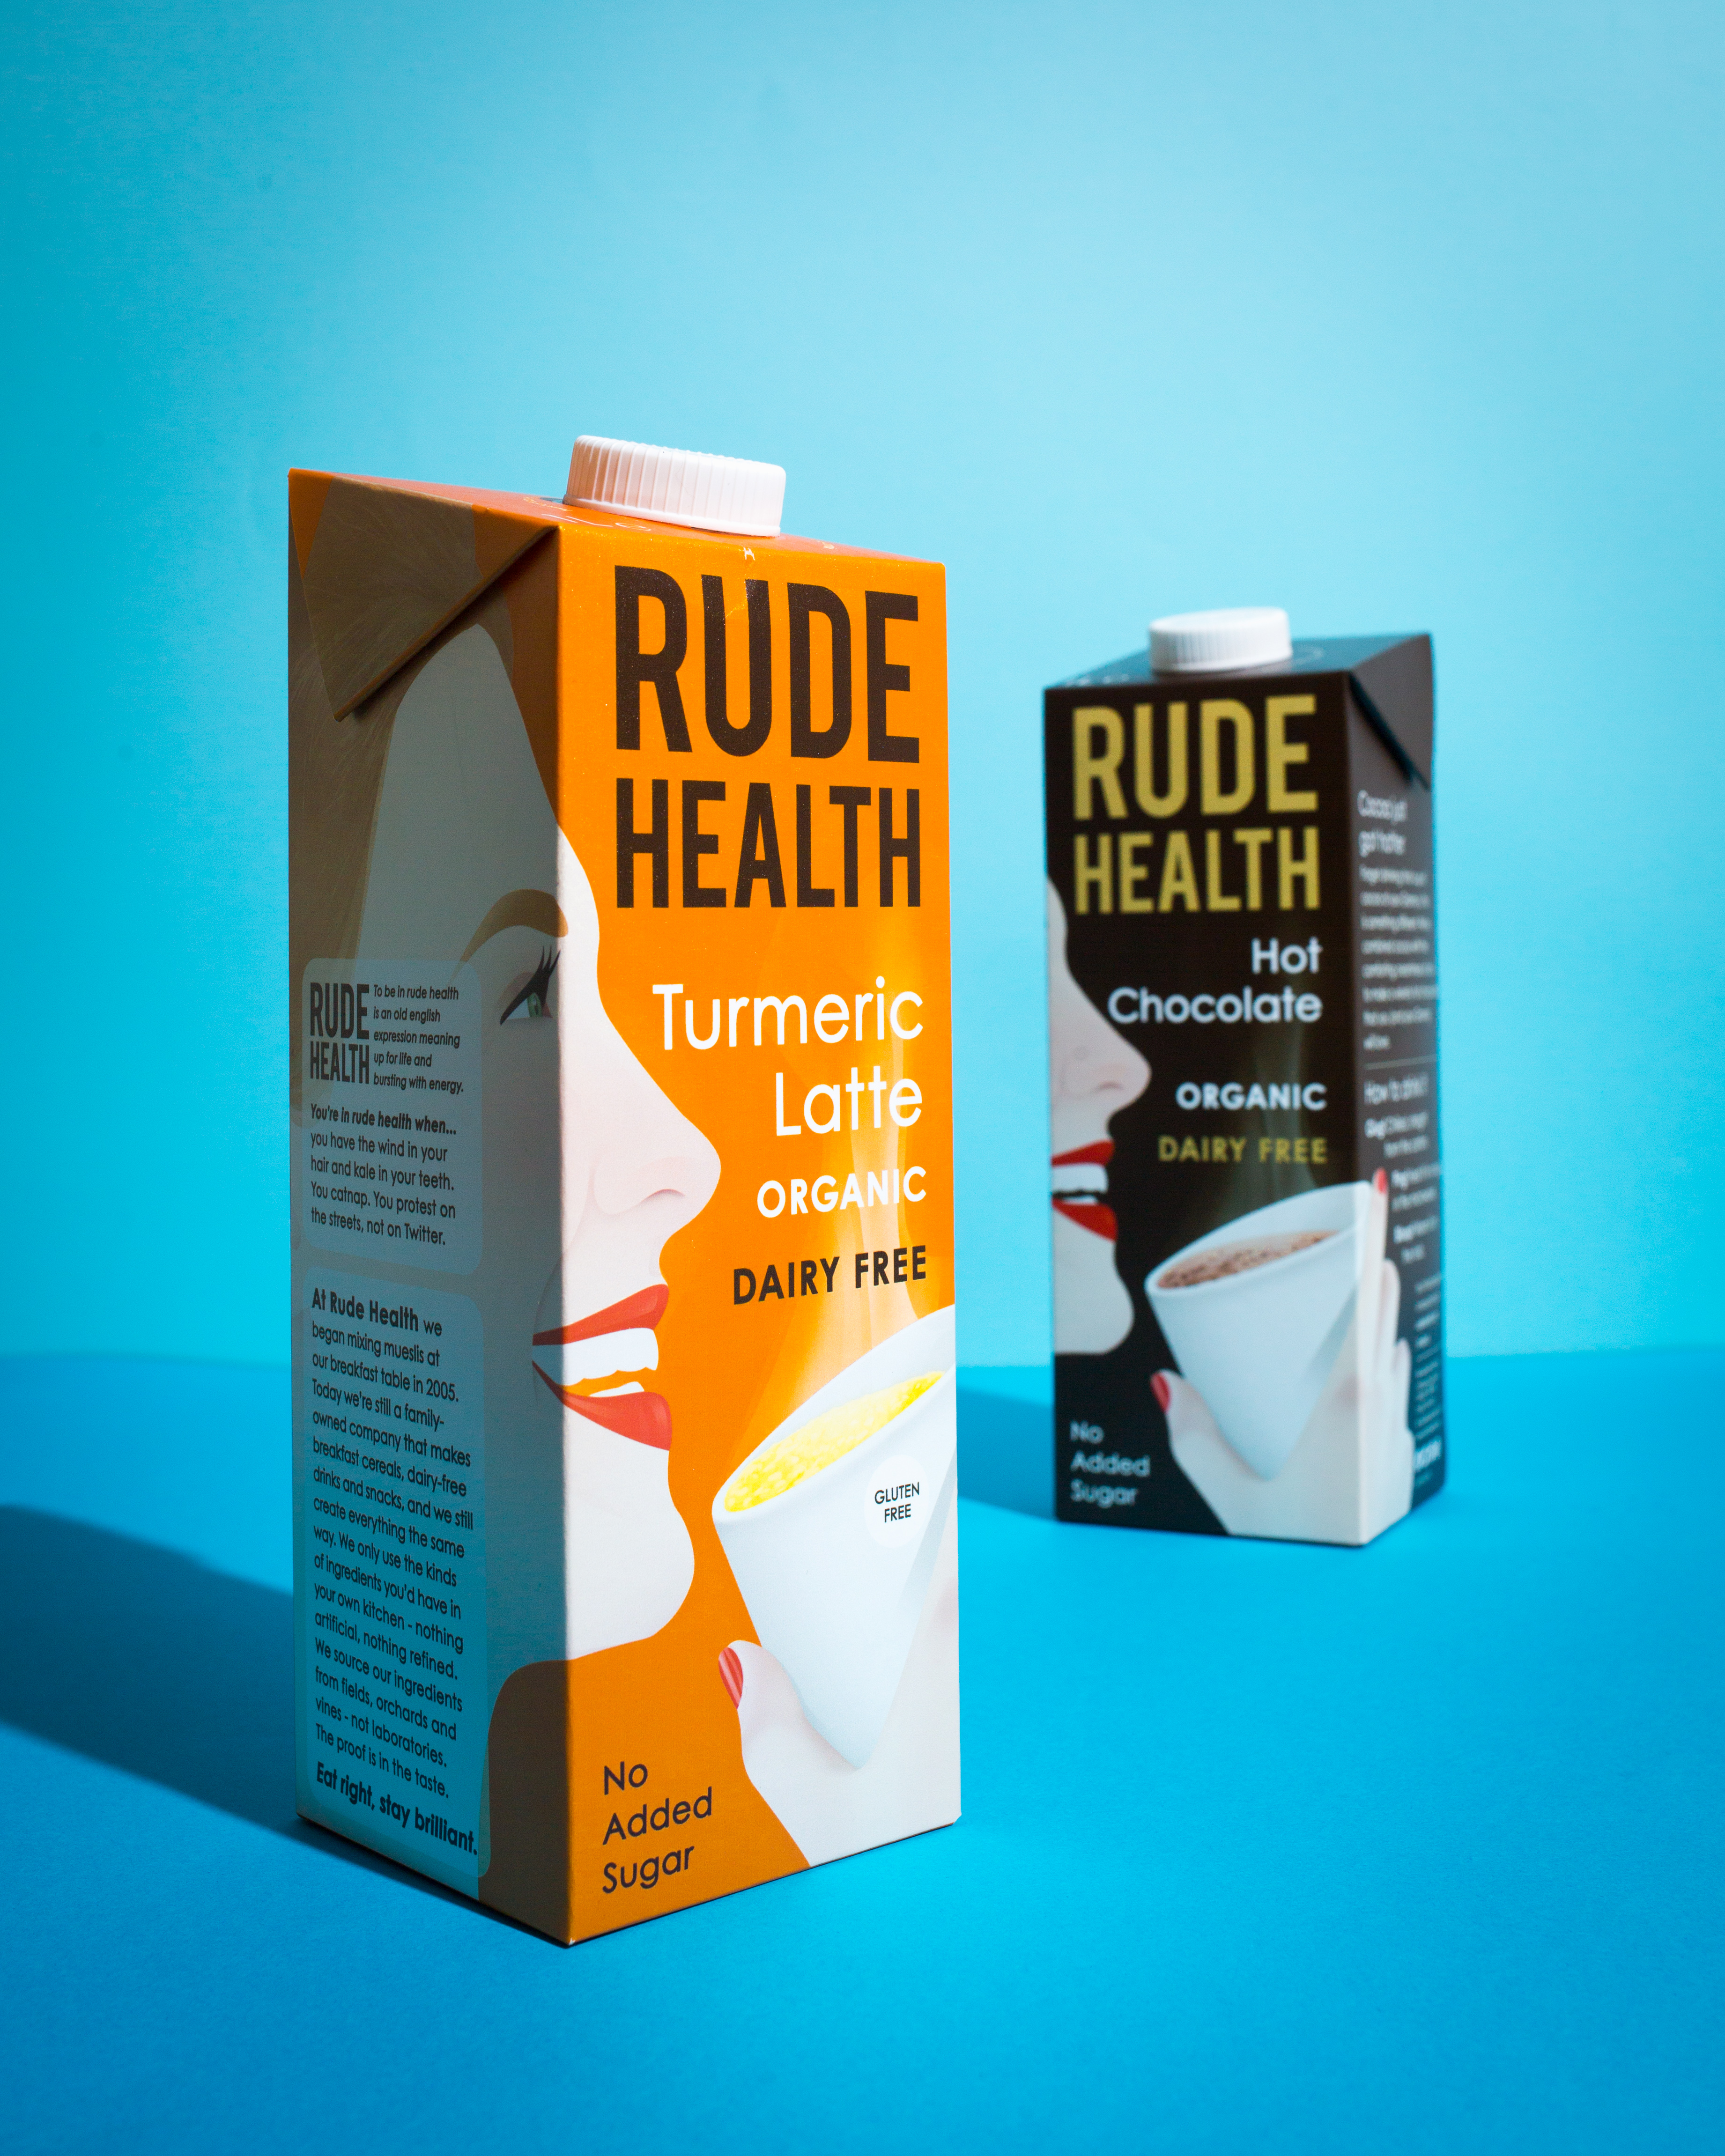 Soft Drink Launches, top Soft Drink Launches, best Soft Drink Launches, new soft drink, rude health tumeric latte, rude health hot chocolate